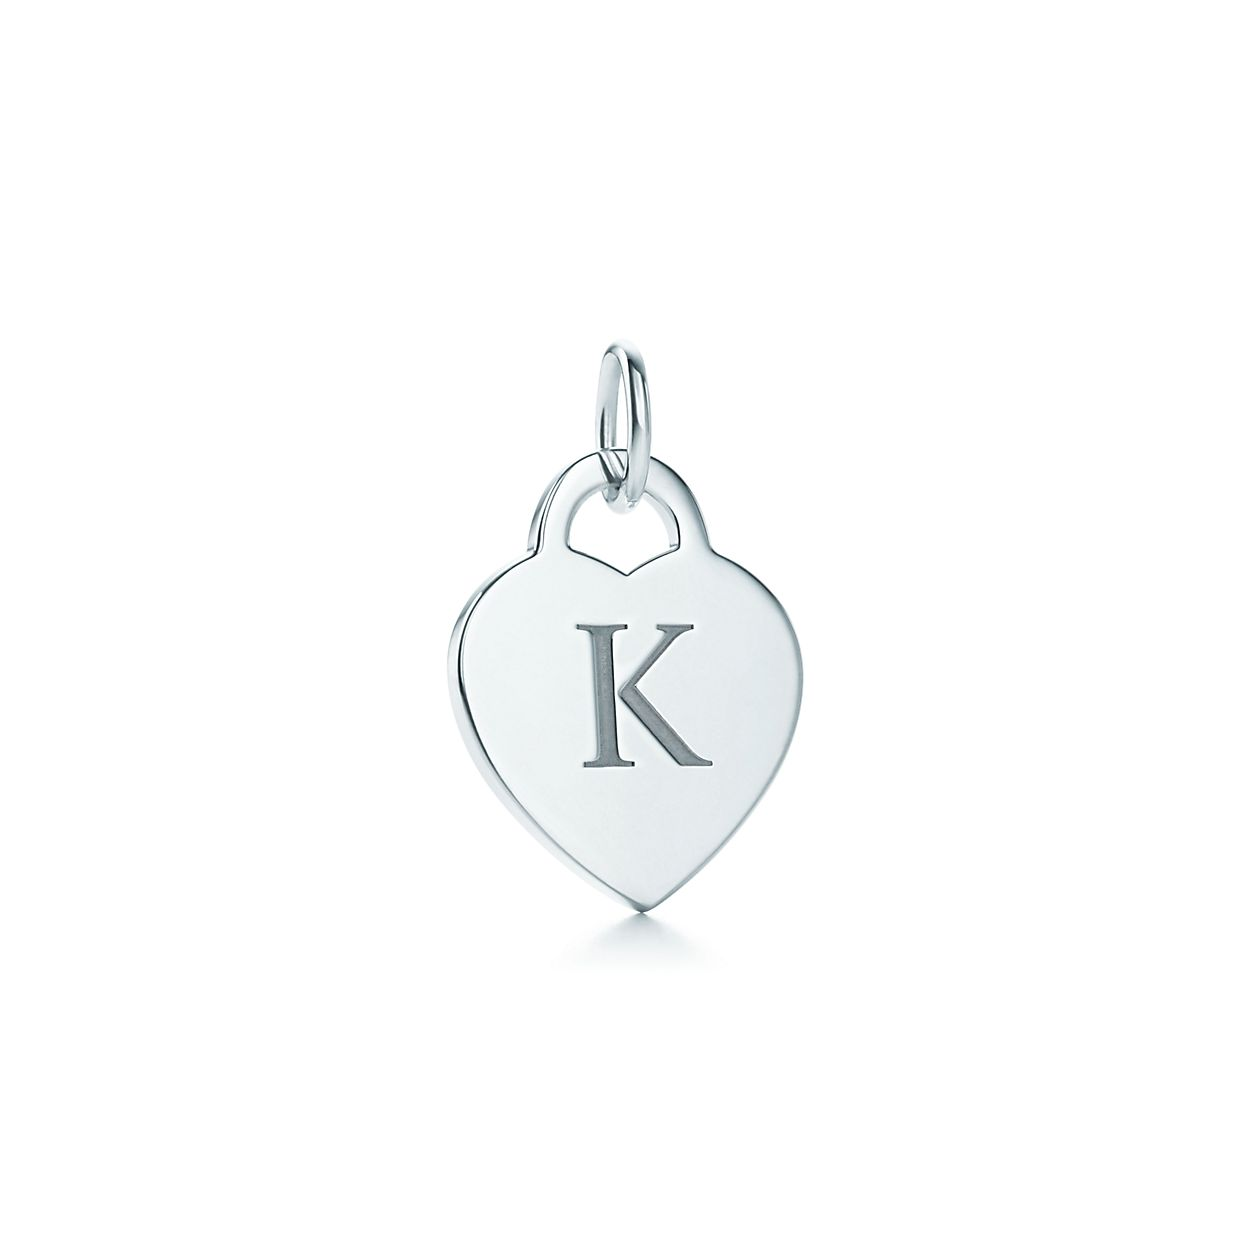 Alphabet heart tag letter W charm in sterling silver Letters A-Z available - Size W Tiffany & Co. cGF7N7Y7D